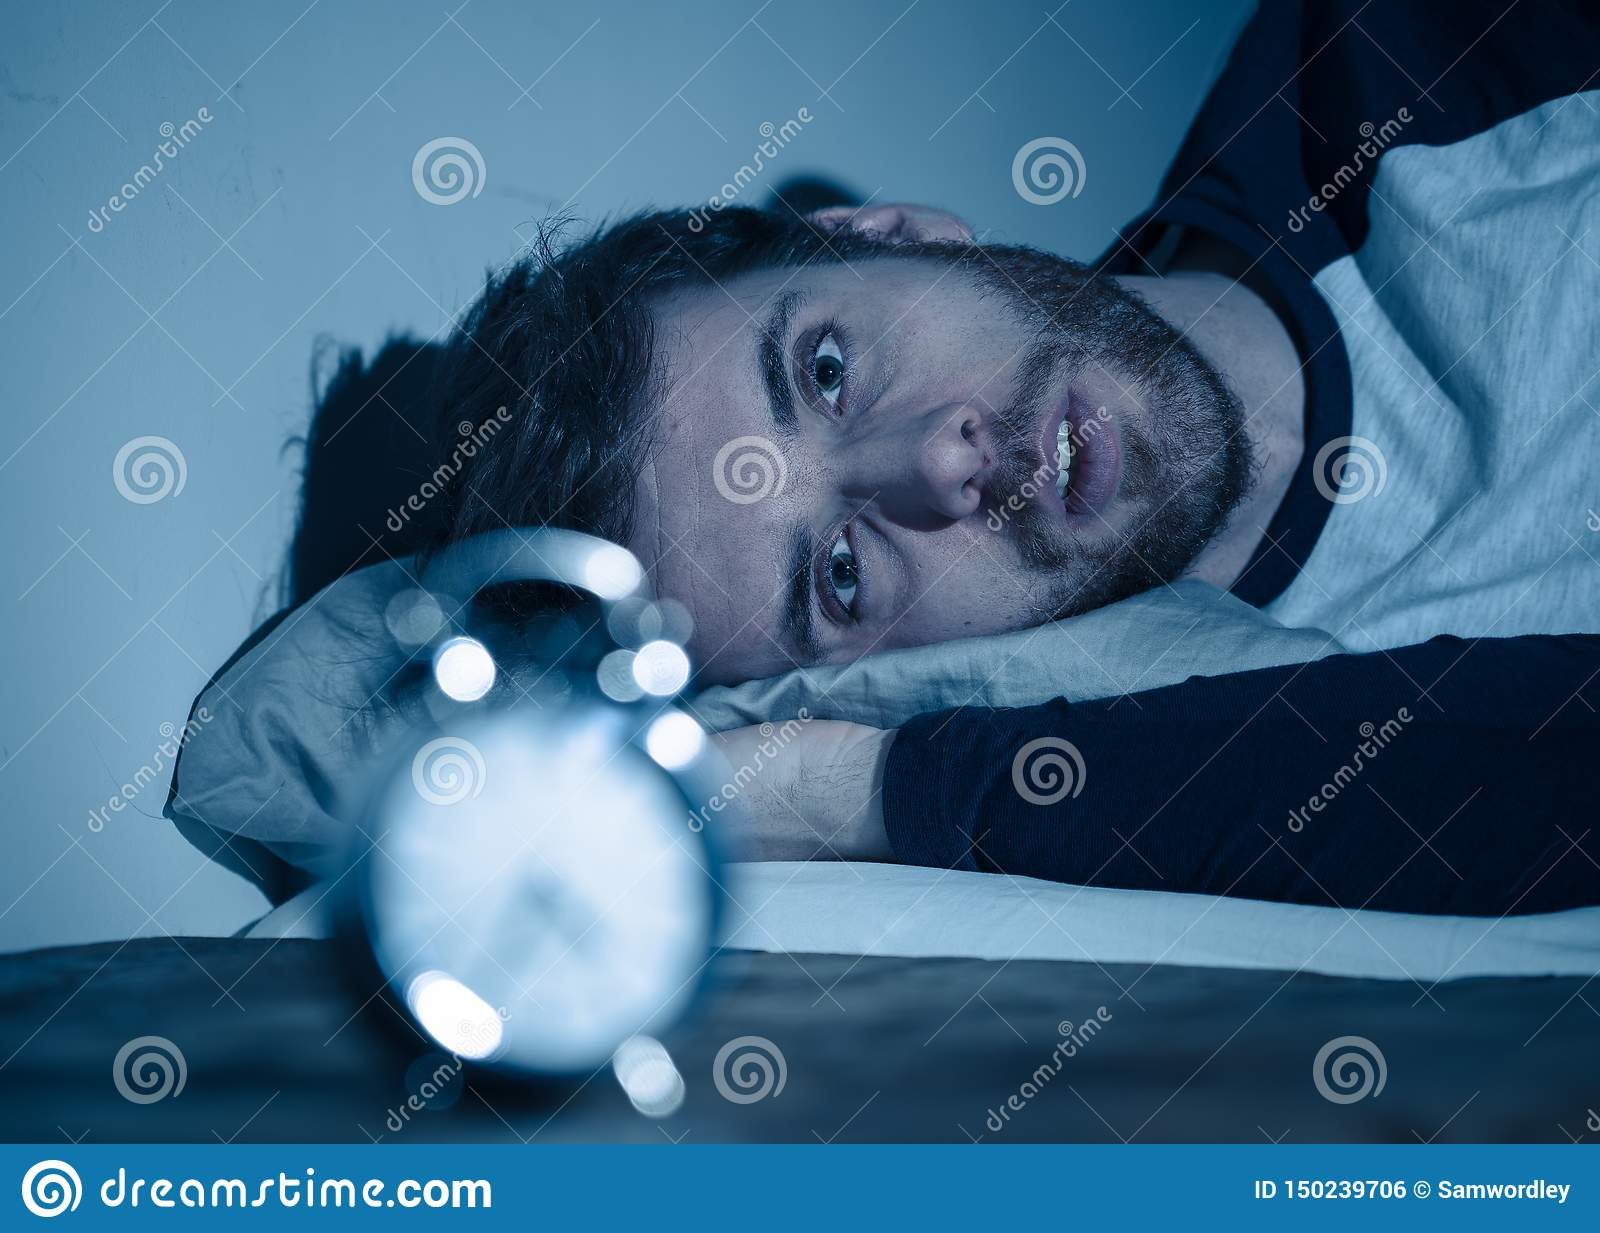 Superb Desperate Stressed Young Man Whit Insomnia Lying In Bed Pabps2019 Chair Design Images Pabps2019Com